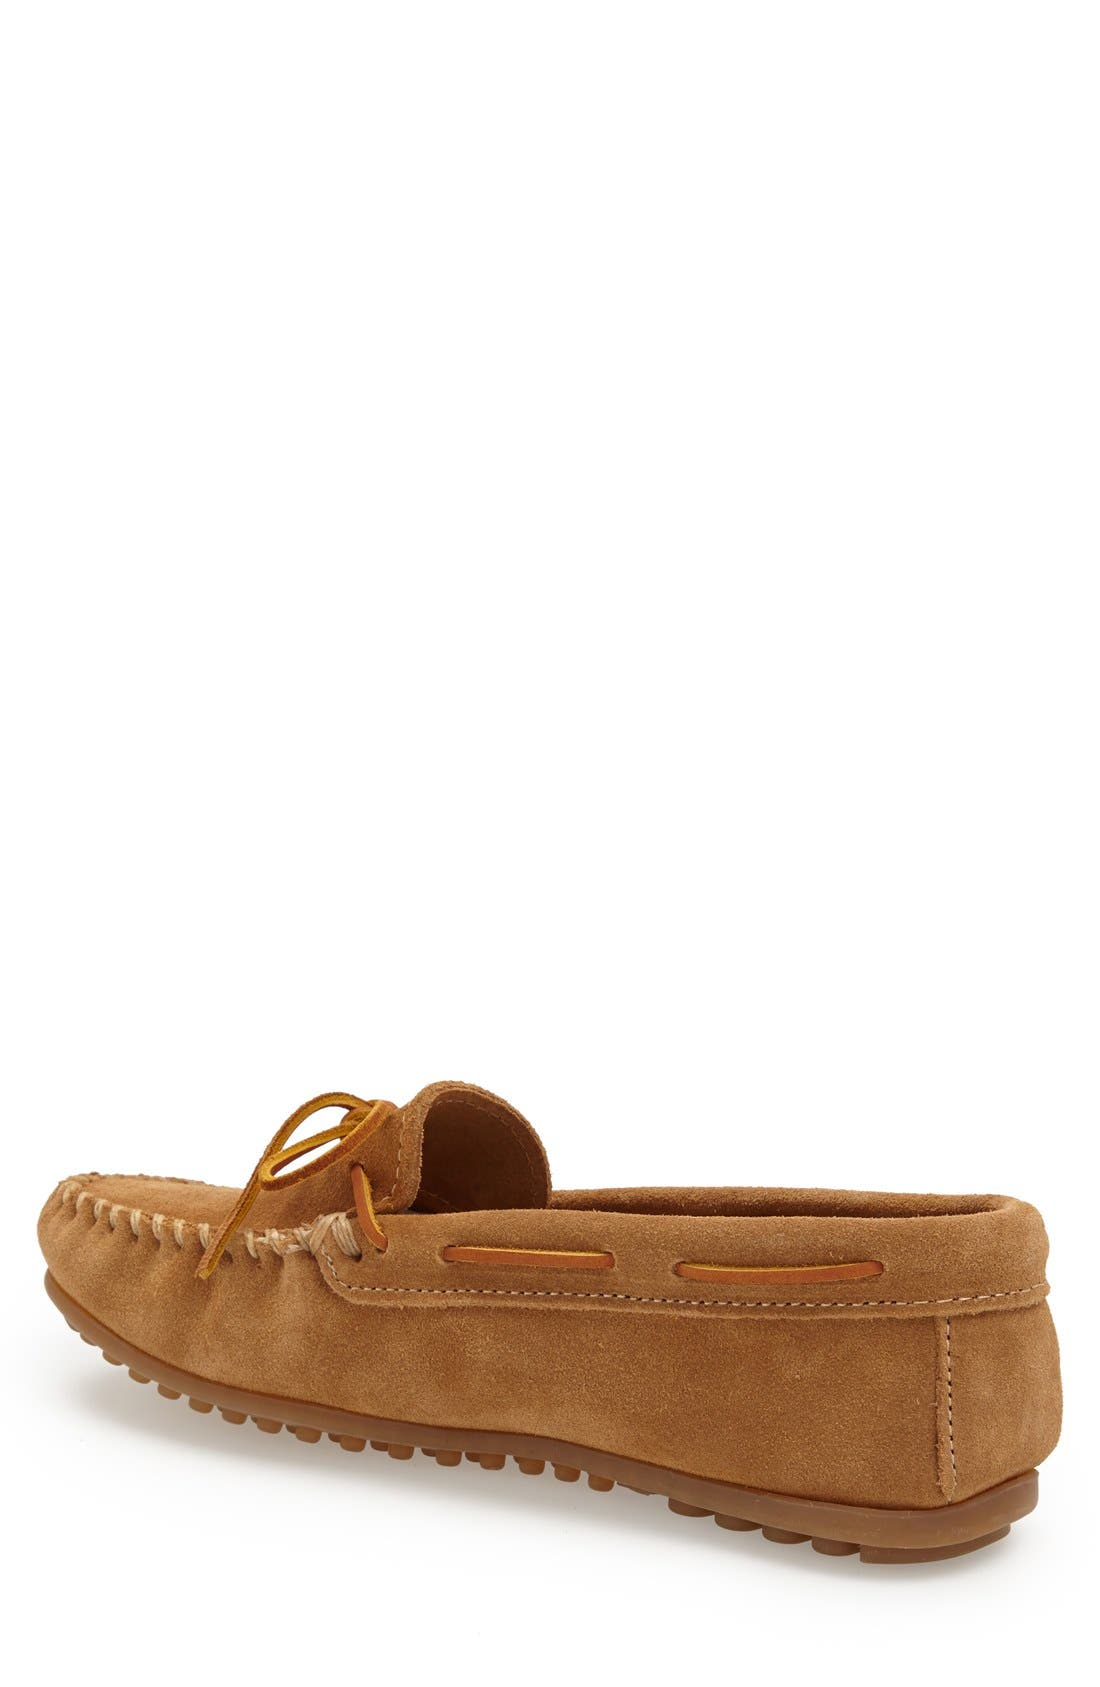 MINNETONKA, Suede Driving Shoe, Alternate thumbnail 3, color, TAUPE